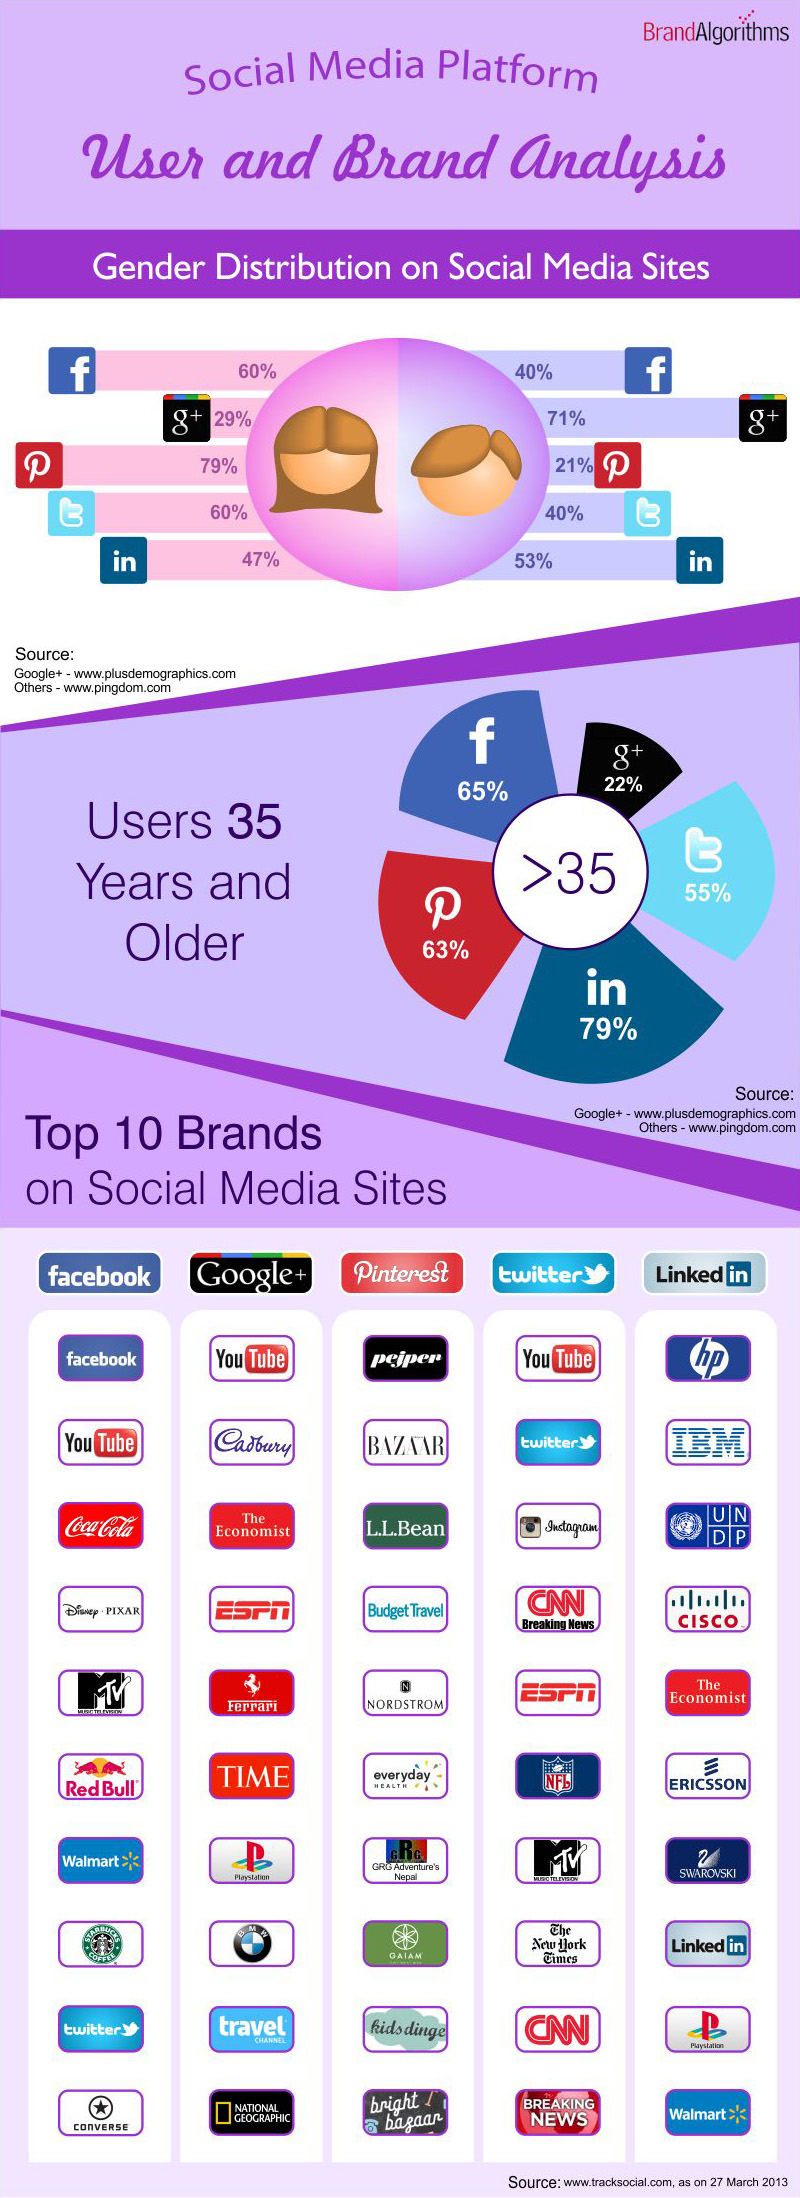 Social Media Platform - User and Brand Analysis